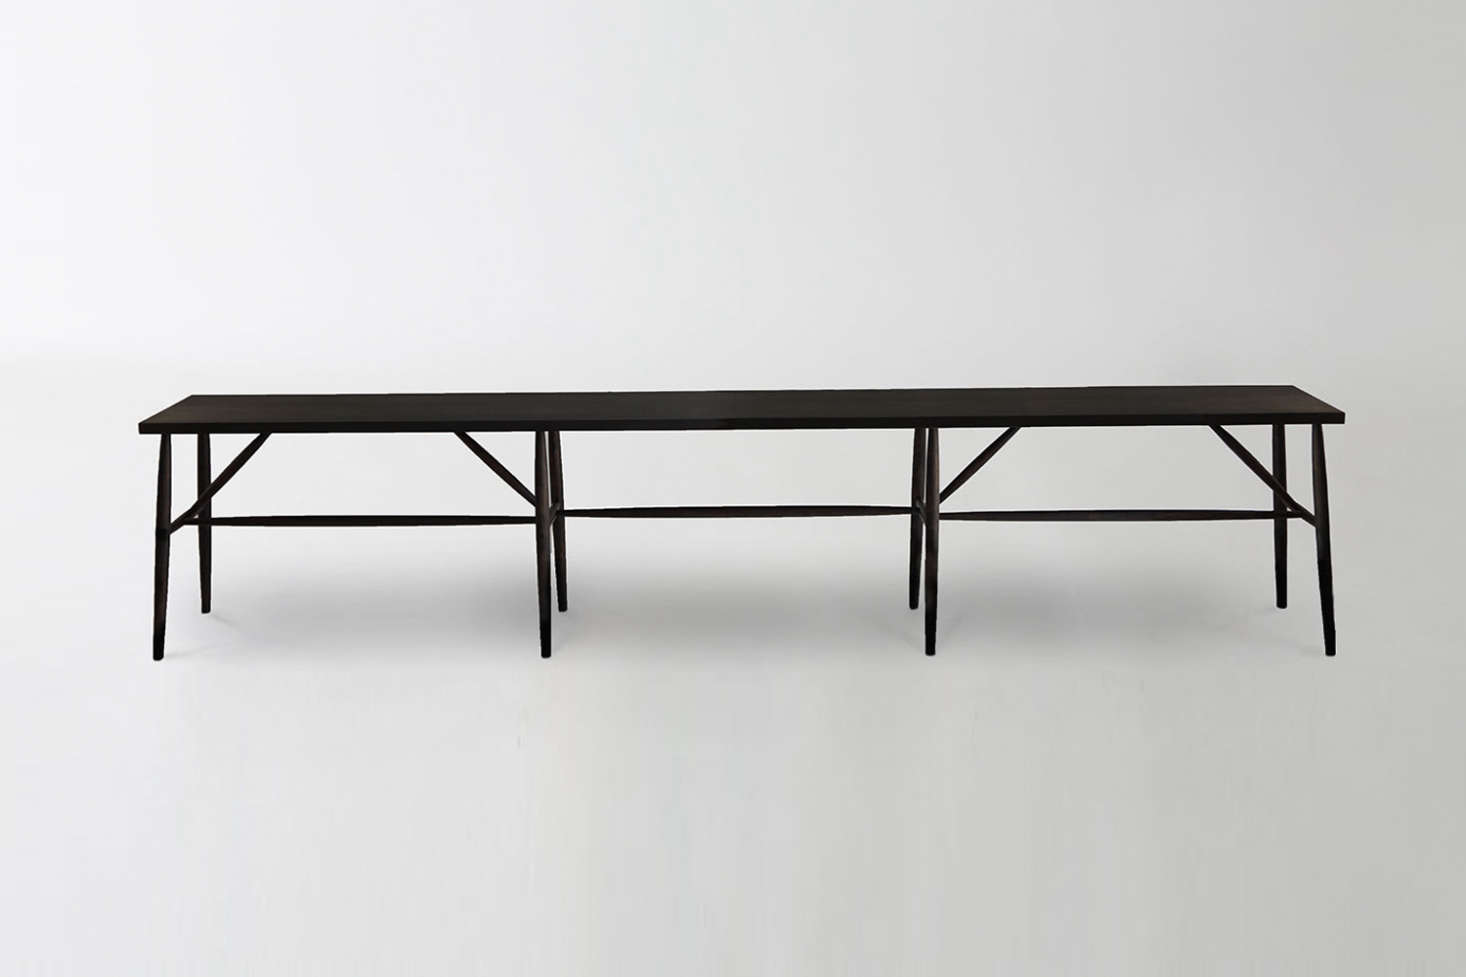 The Sawkille Co. Ebonized Black Walnut Bench is inspired by the heritage and community of the Hudson Valley. The bench is made-to-order and available for $6,100 through March in San Francisco.